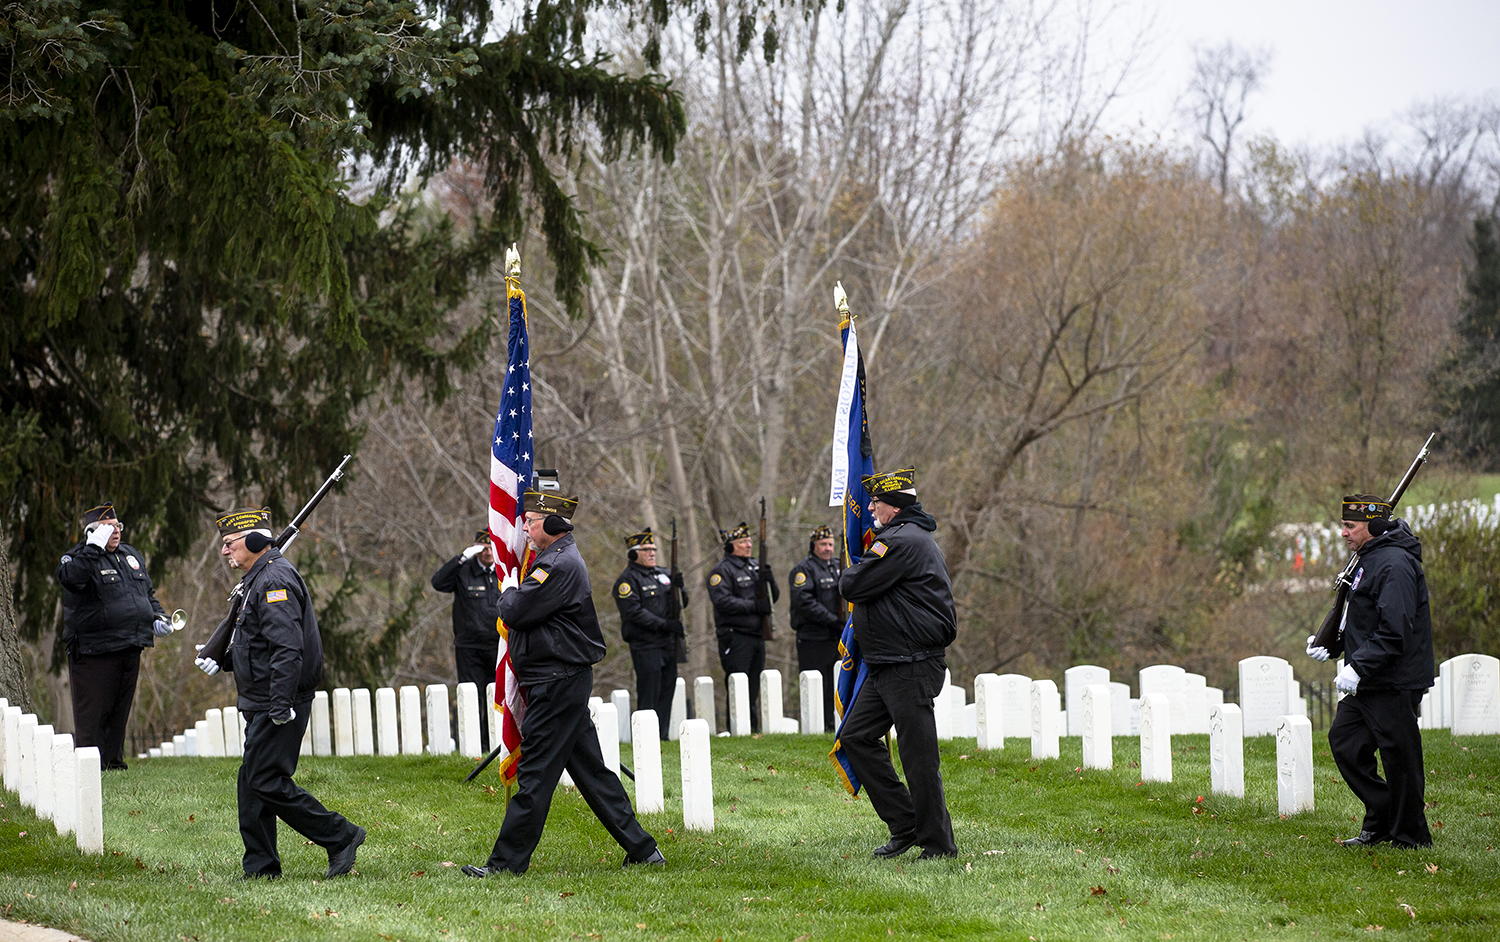 The Inter-Veterans Burial Detail of Sangamon County Color Guard closes out the Veterans Day ceremony at Camp Butler National Cemetery Monday, Nov. 12, 2018 in Springfield, Ill. [Rich Saal/The State Journal-Register]